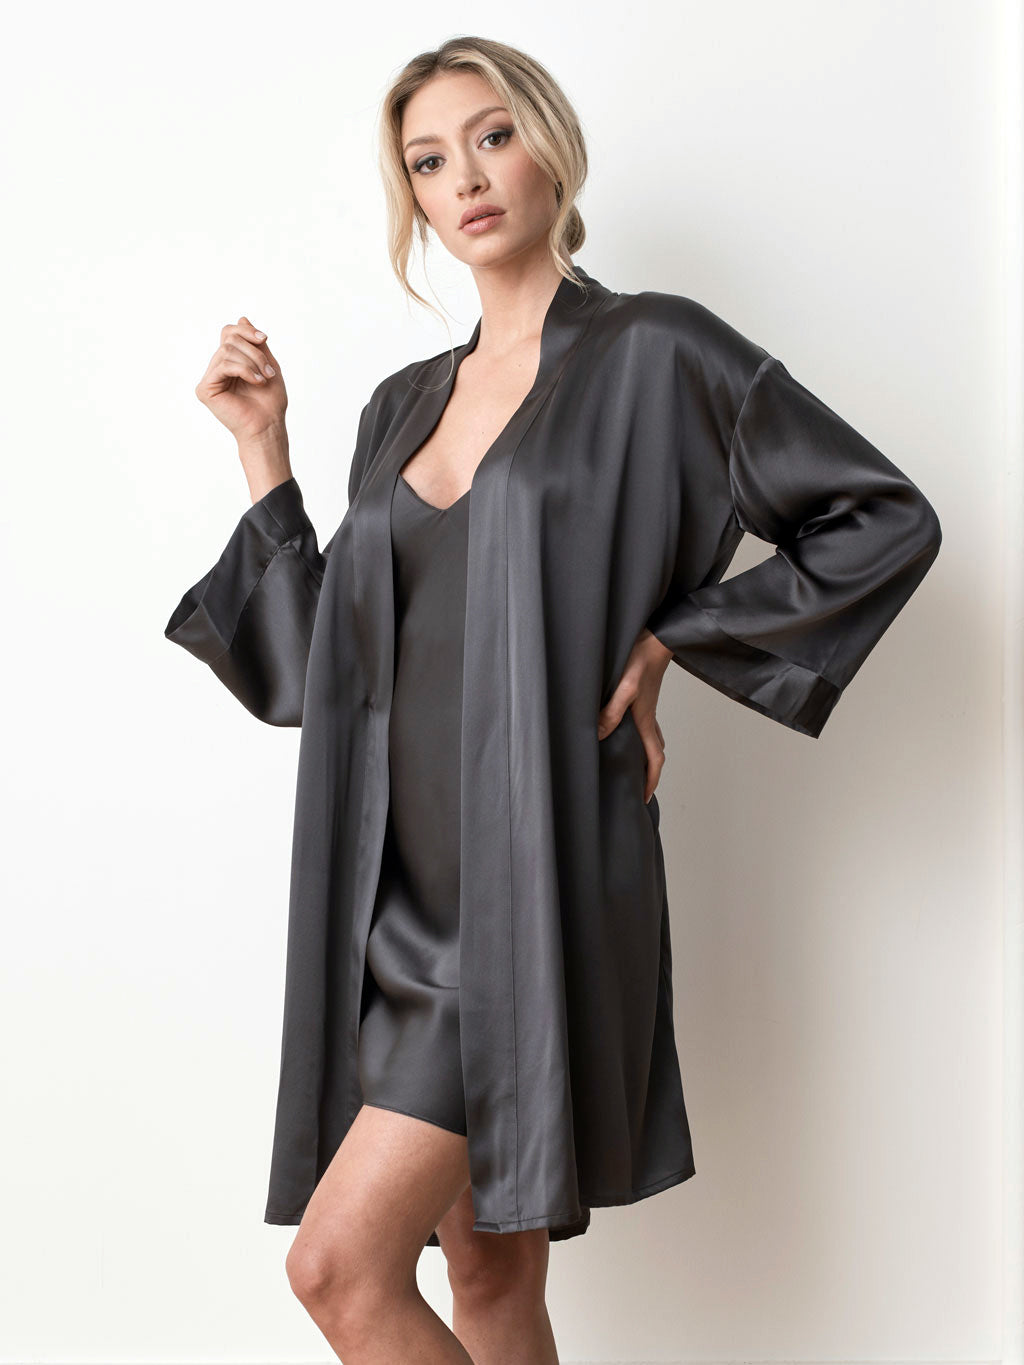 Silk satin charcoal robe front